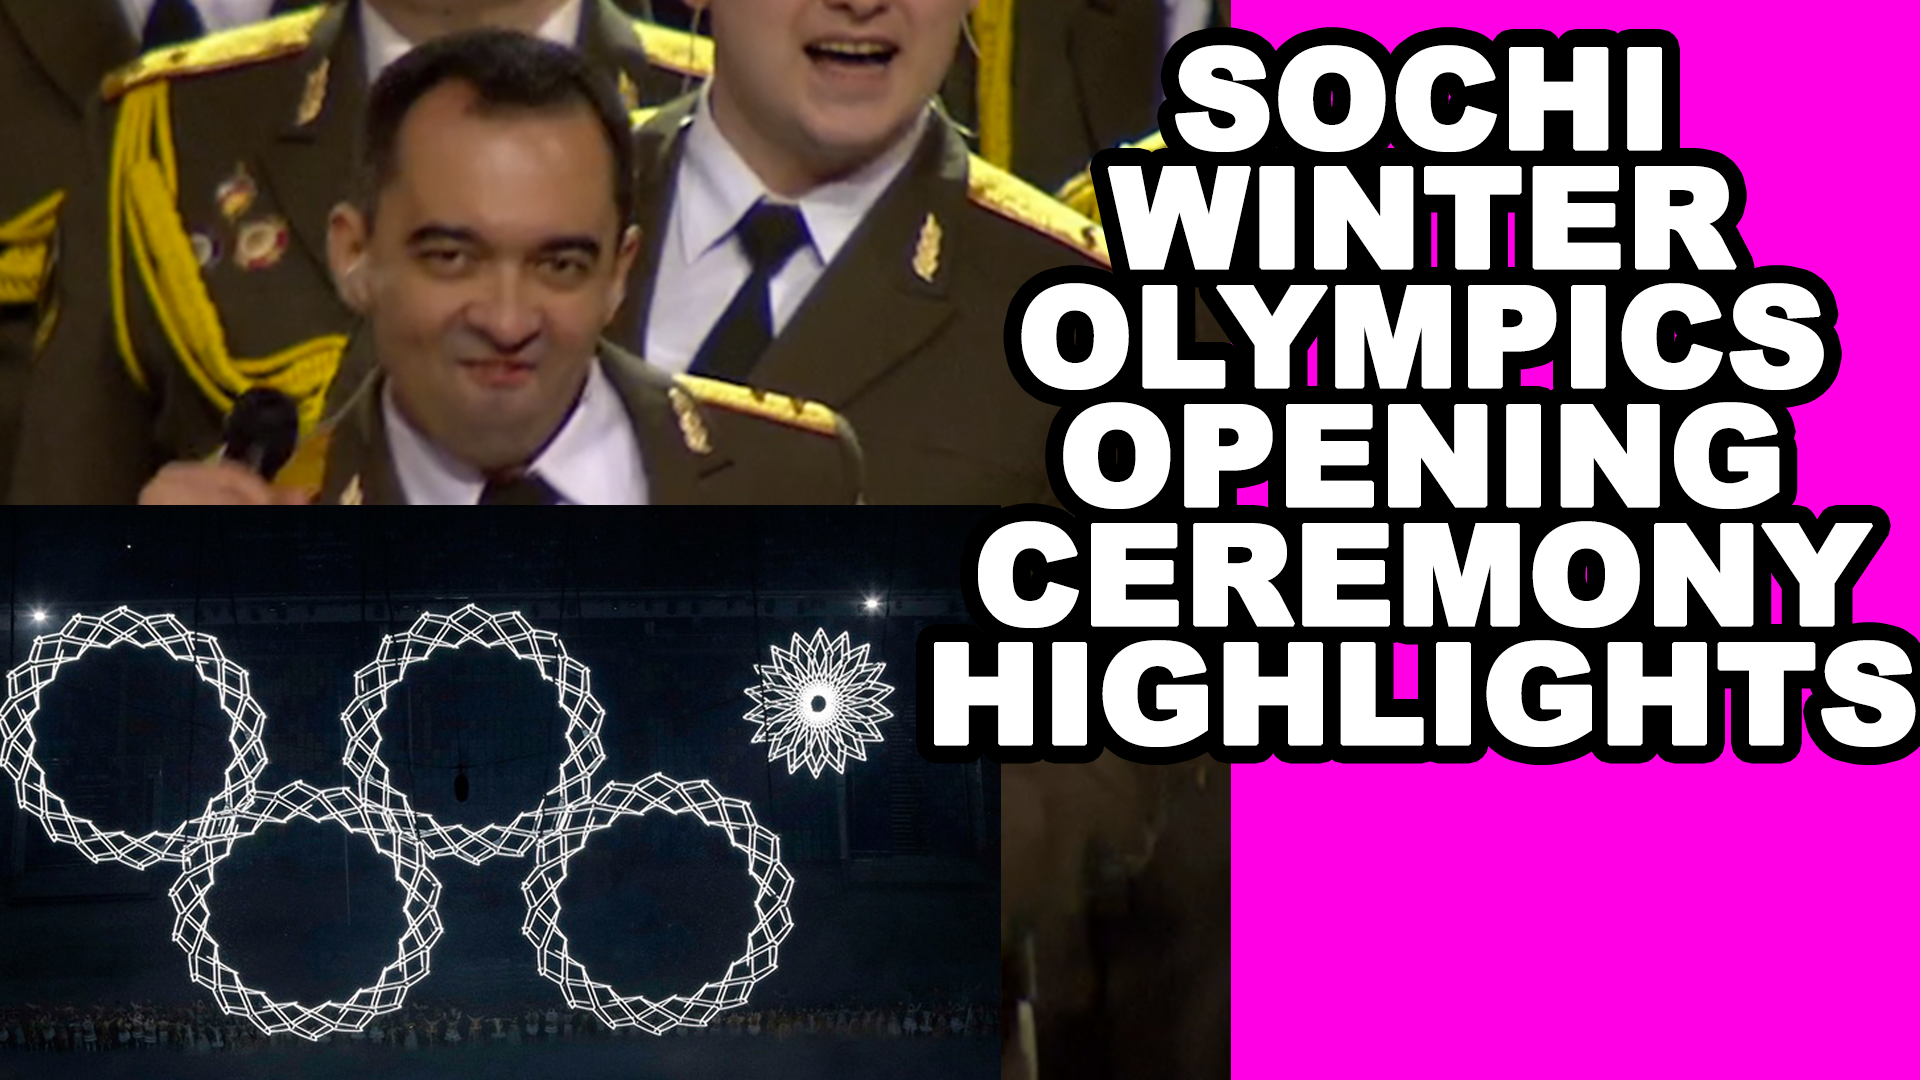 sochi-winter-olympics-2014-opening-ceremony